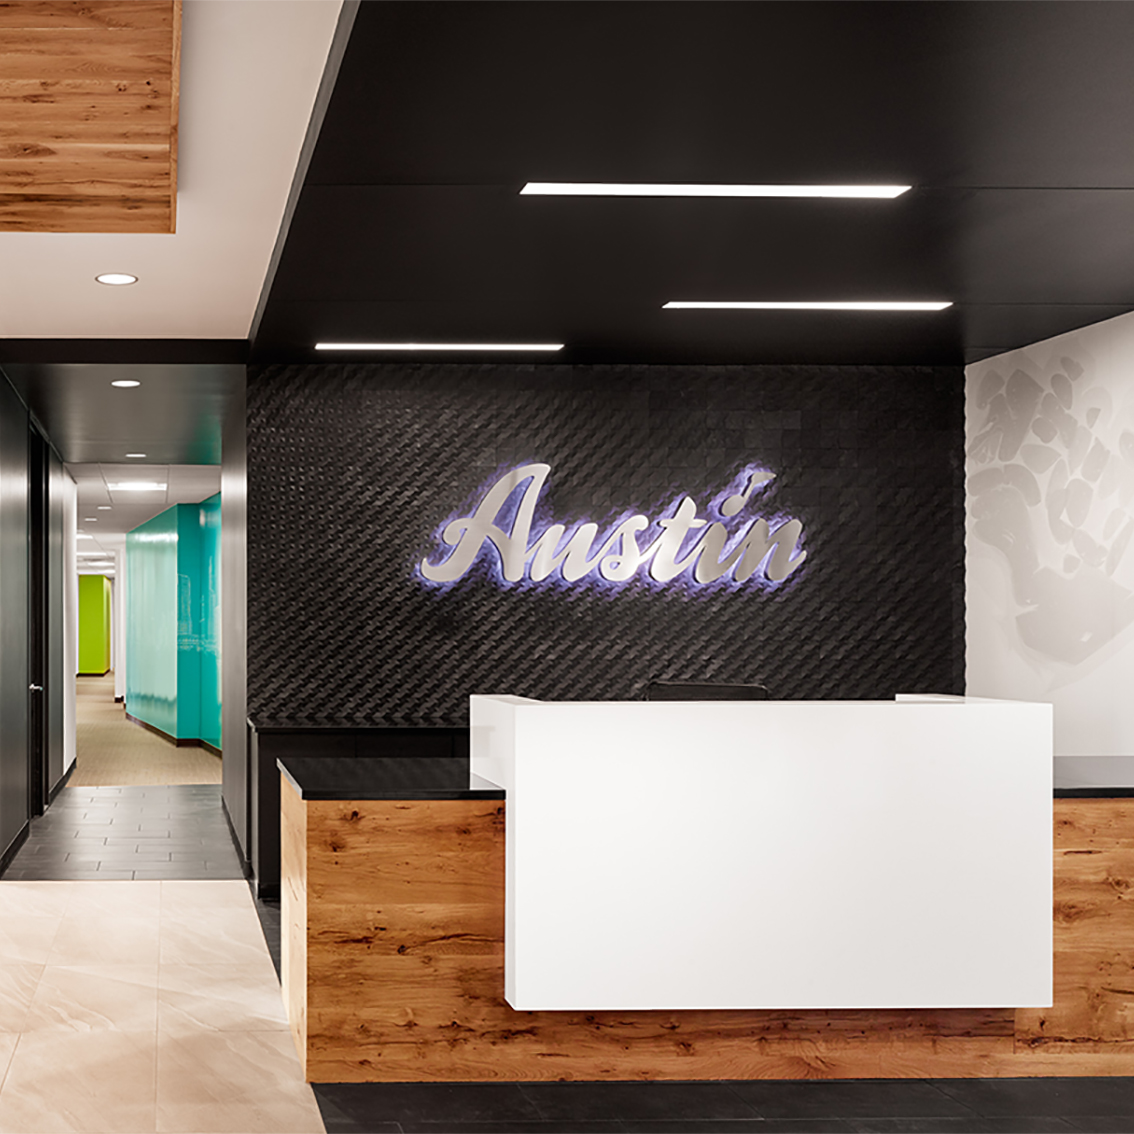 Austin Business Journal  Austin Convention and Visitors Bureau unveils colorful, quirky visitors center.